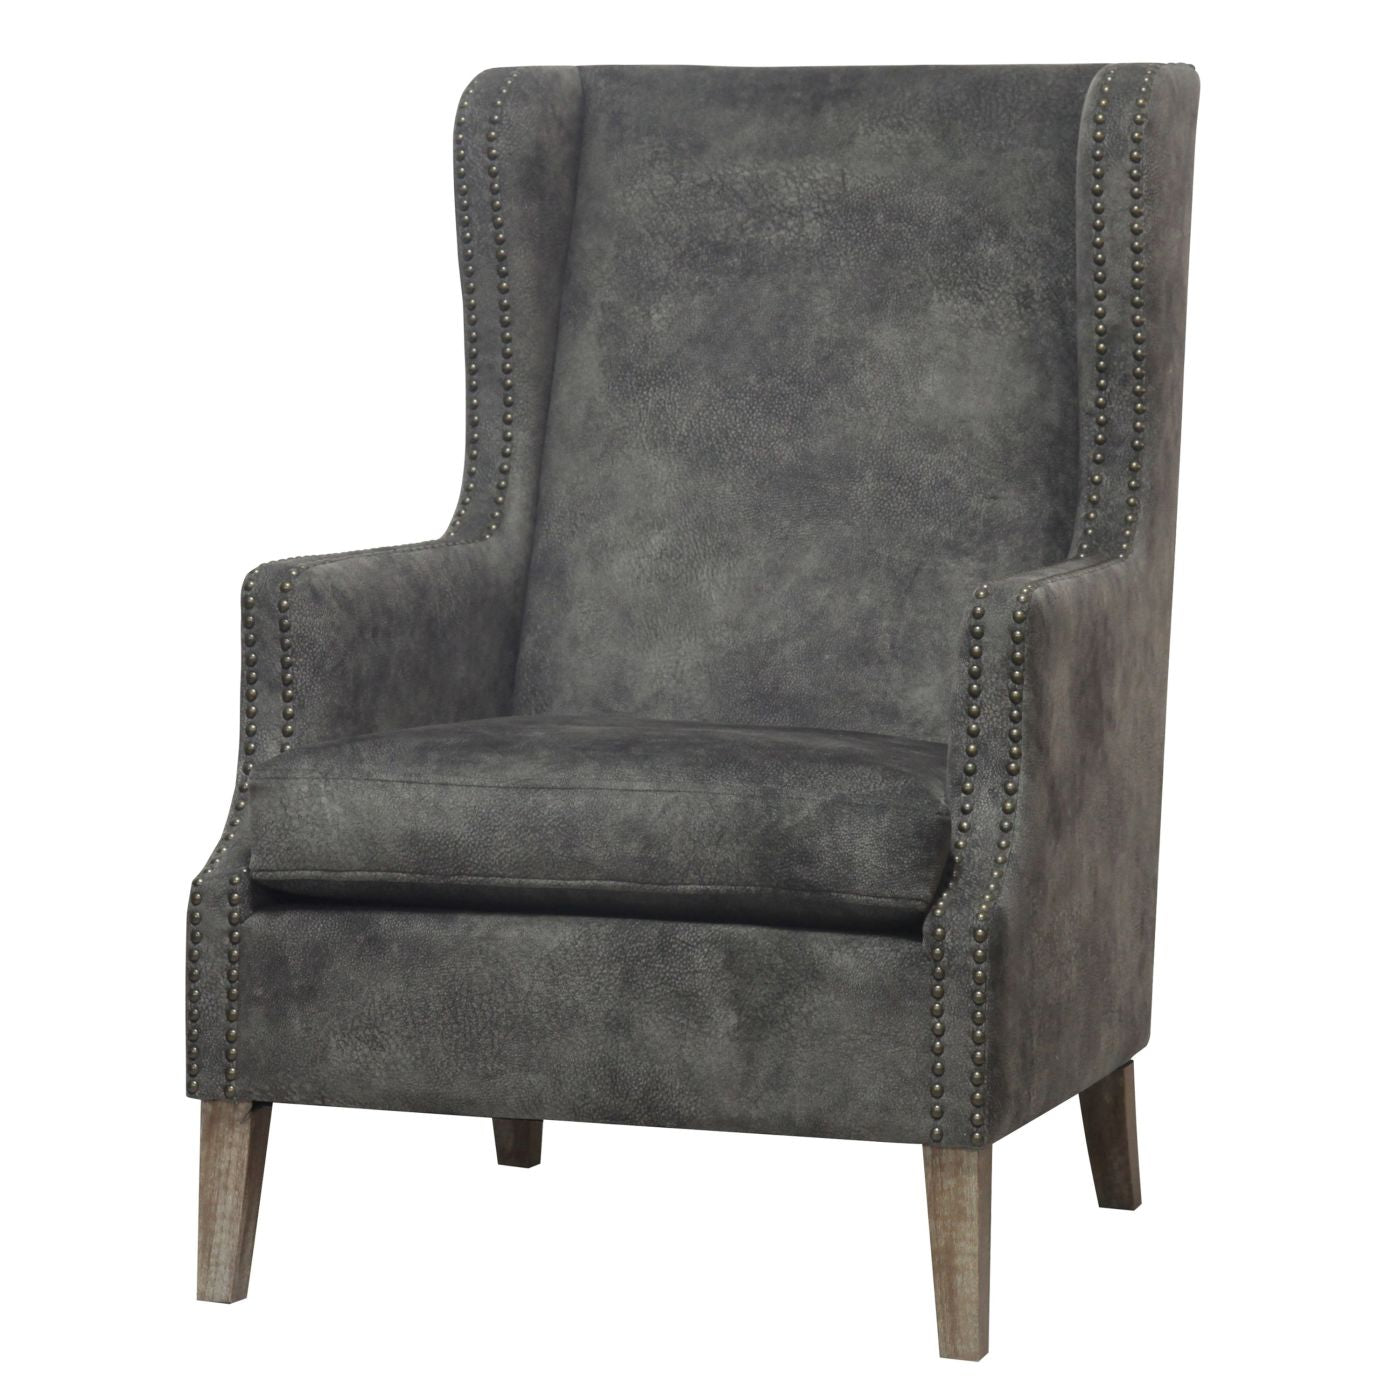 Ellington Wing Arm Chair Drift Wood Legs Pewter Hide Accent ...